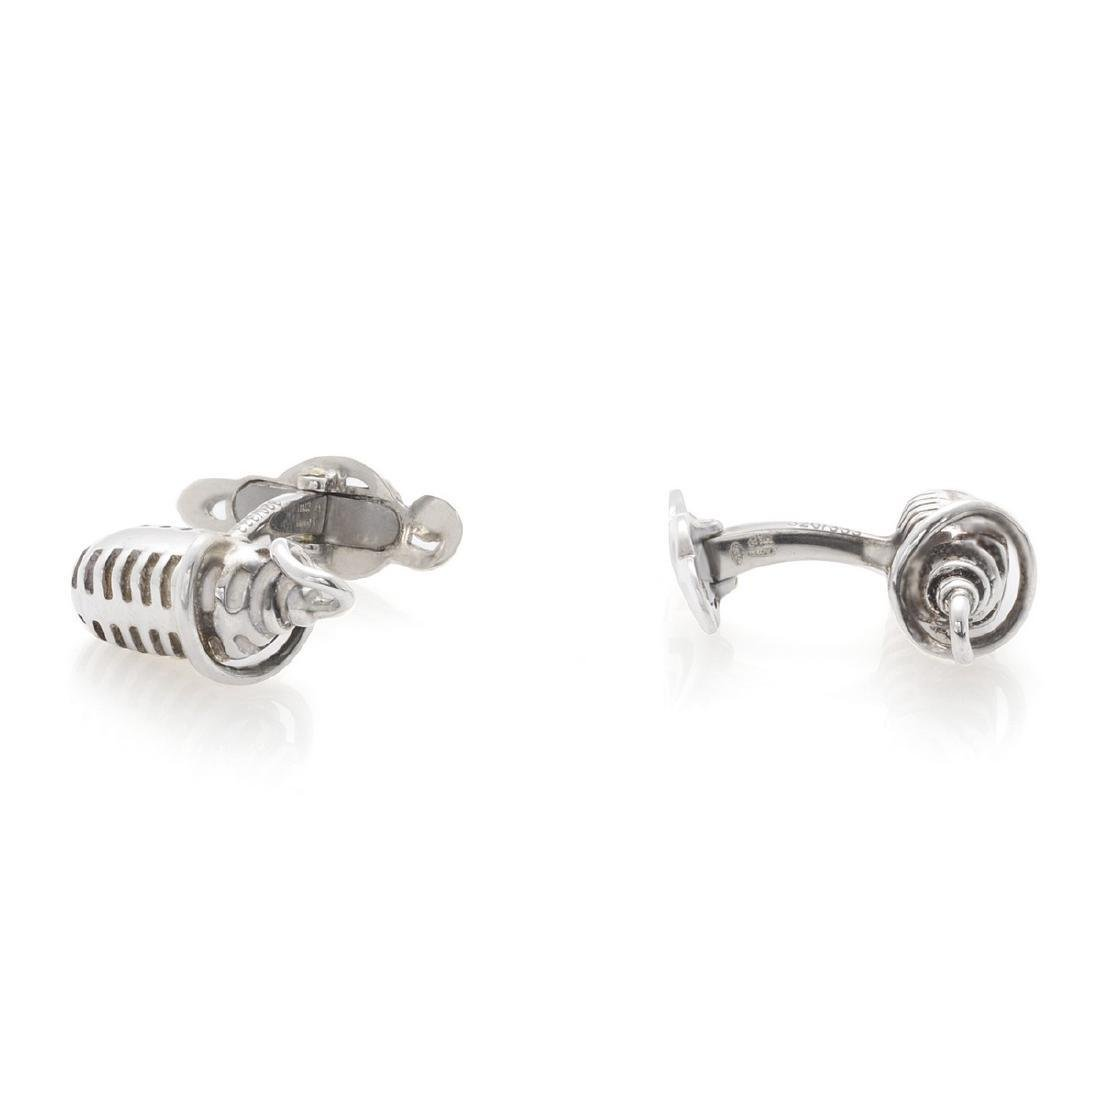 Montegrappa Microphone Sterling Silver Cufflinks - 4